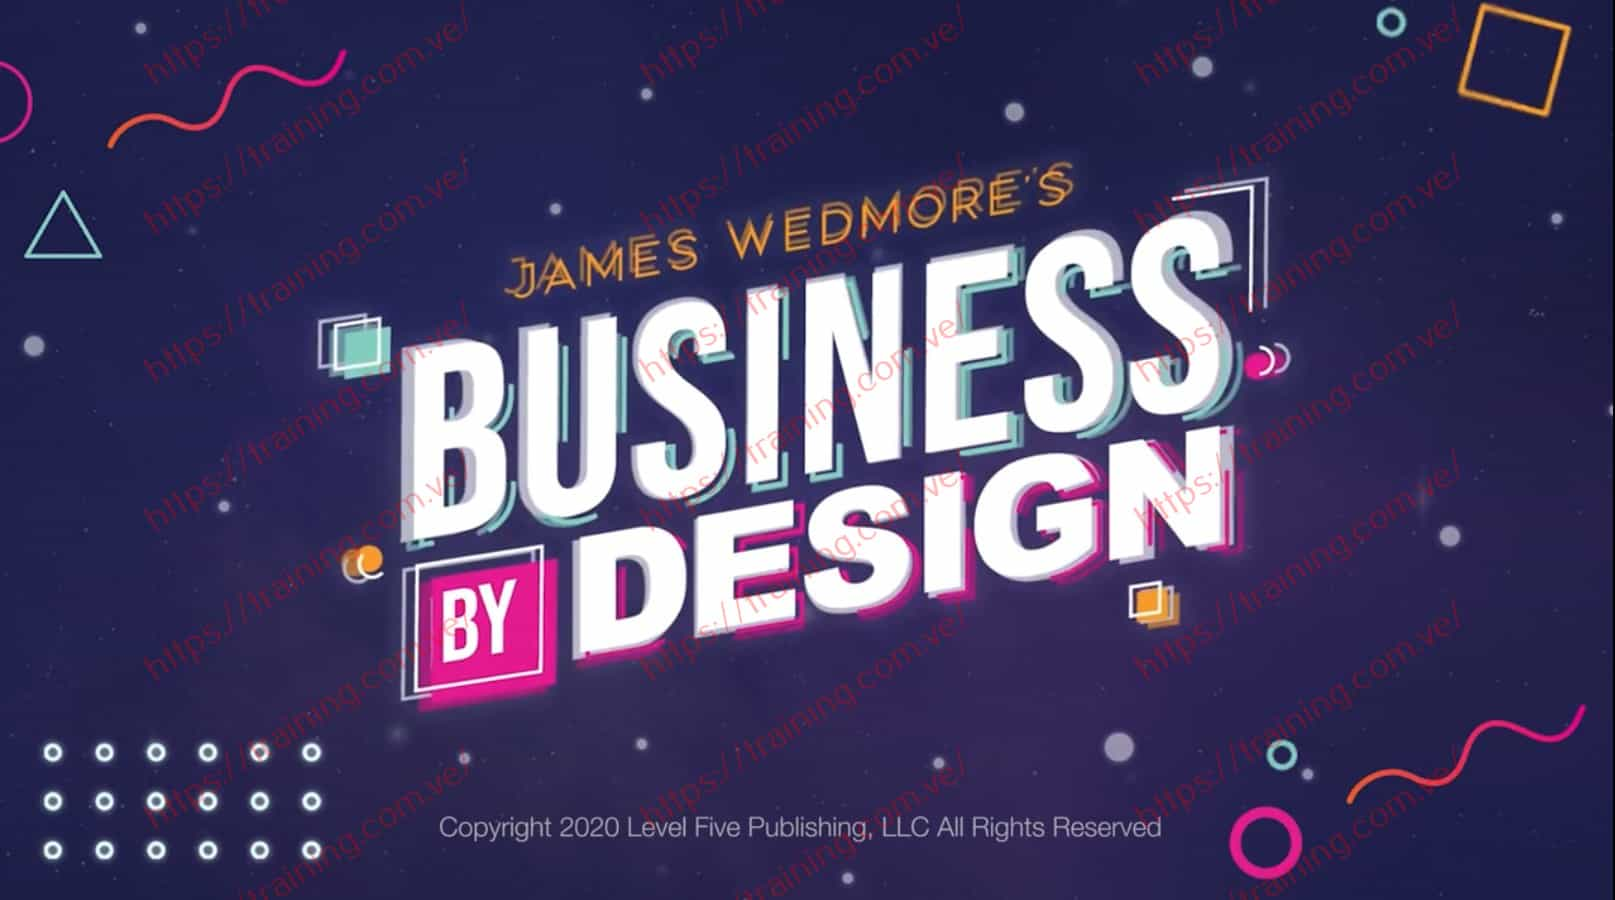 BUSINESS By DESIGN 2020 by James Wedmore Discount